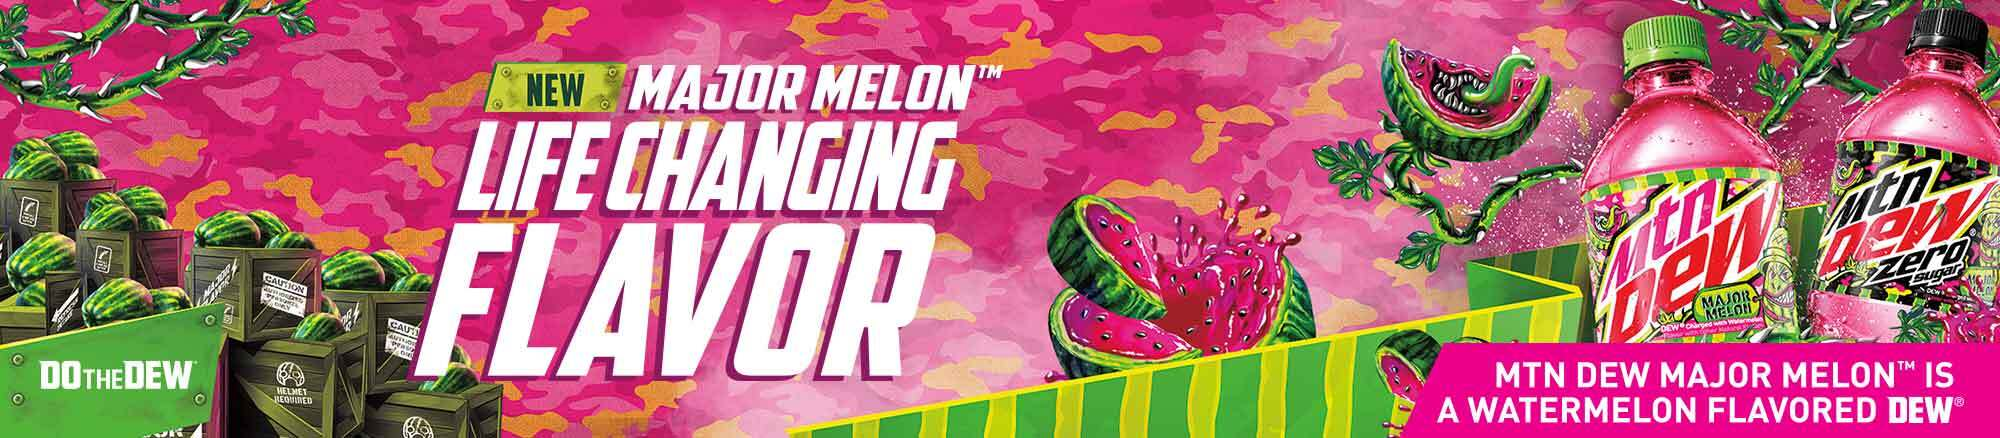 New Mountain Dew Major Melon! It's a life changing flavor.